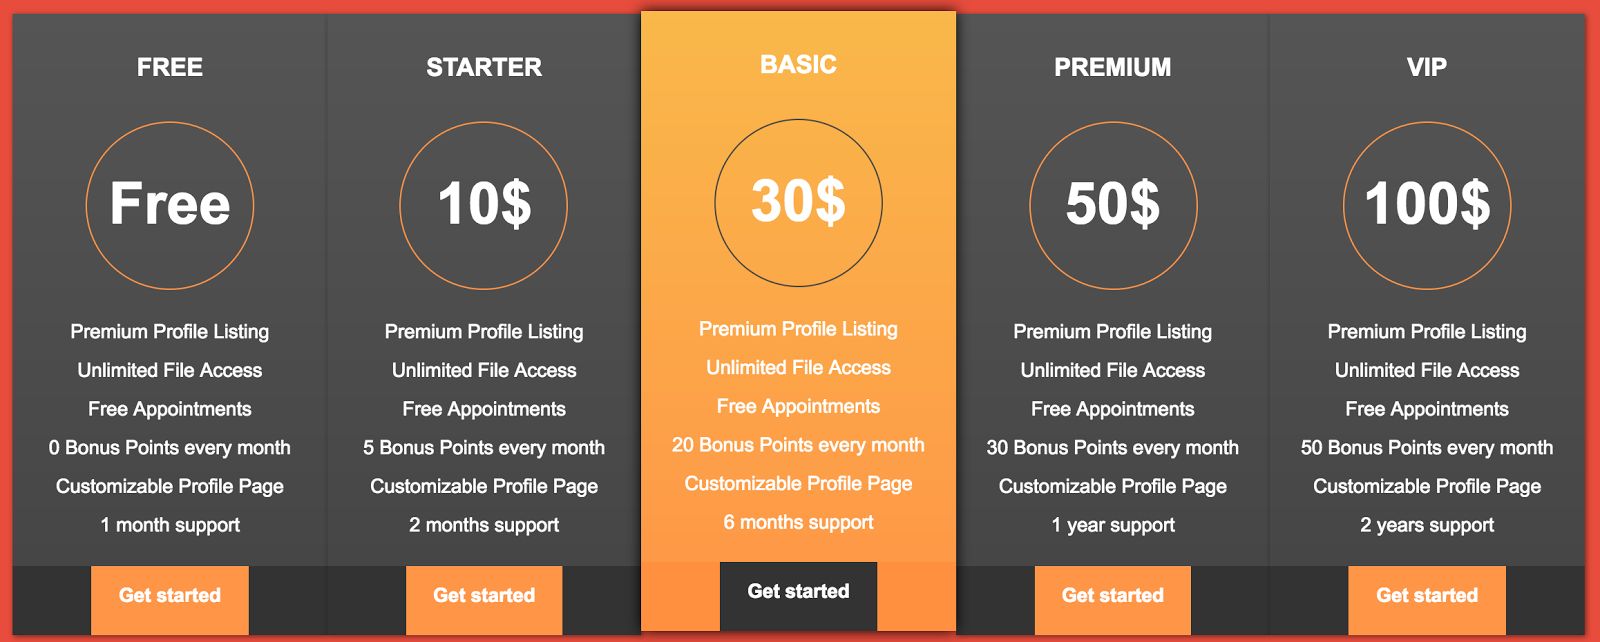 Excelent colorful Pricing Table